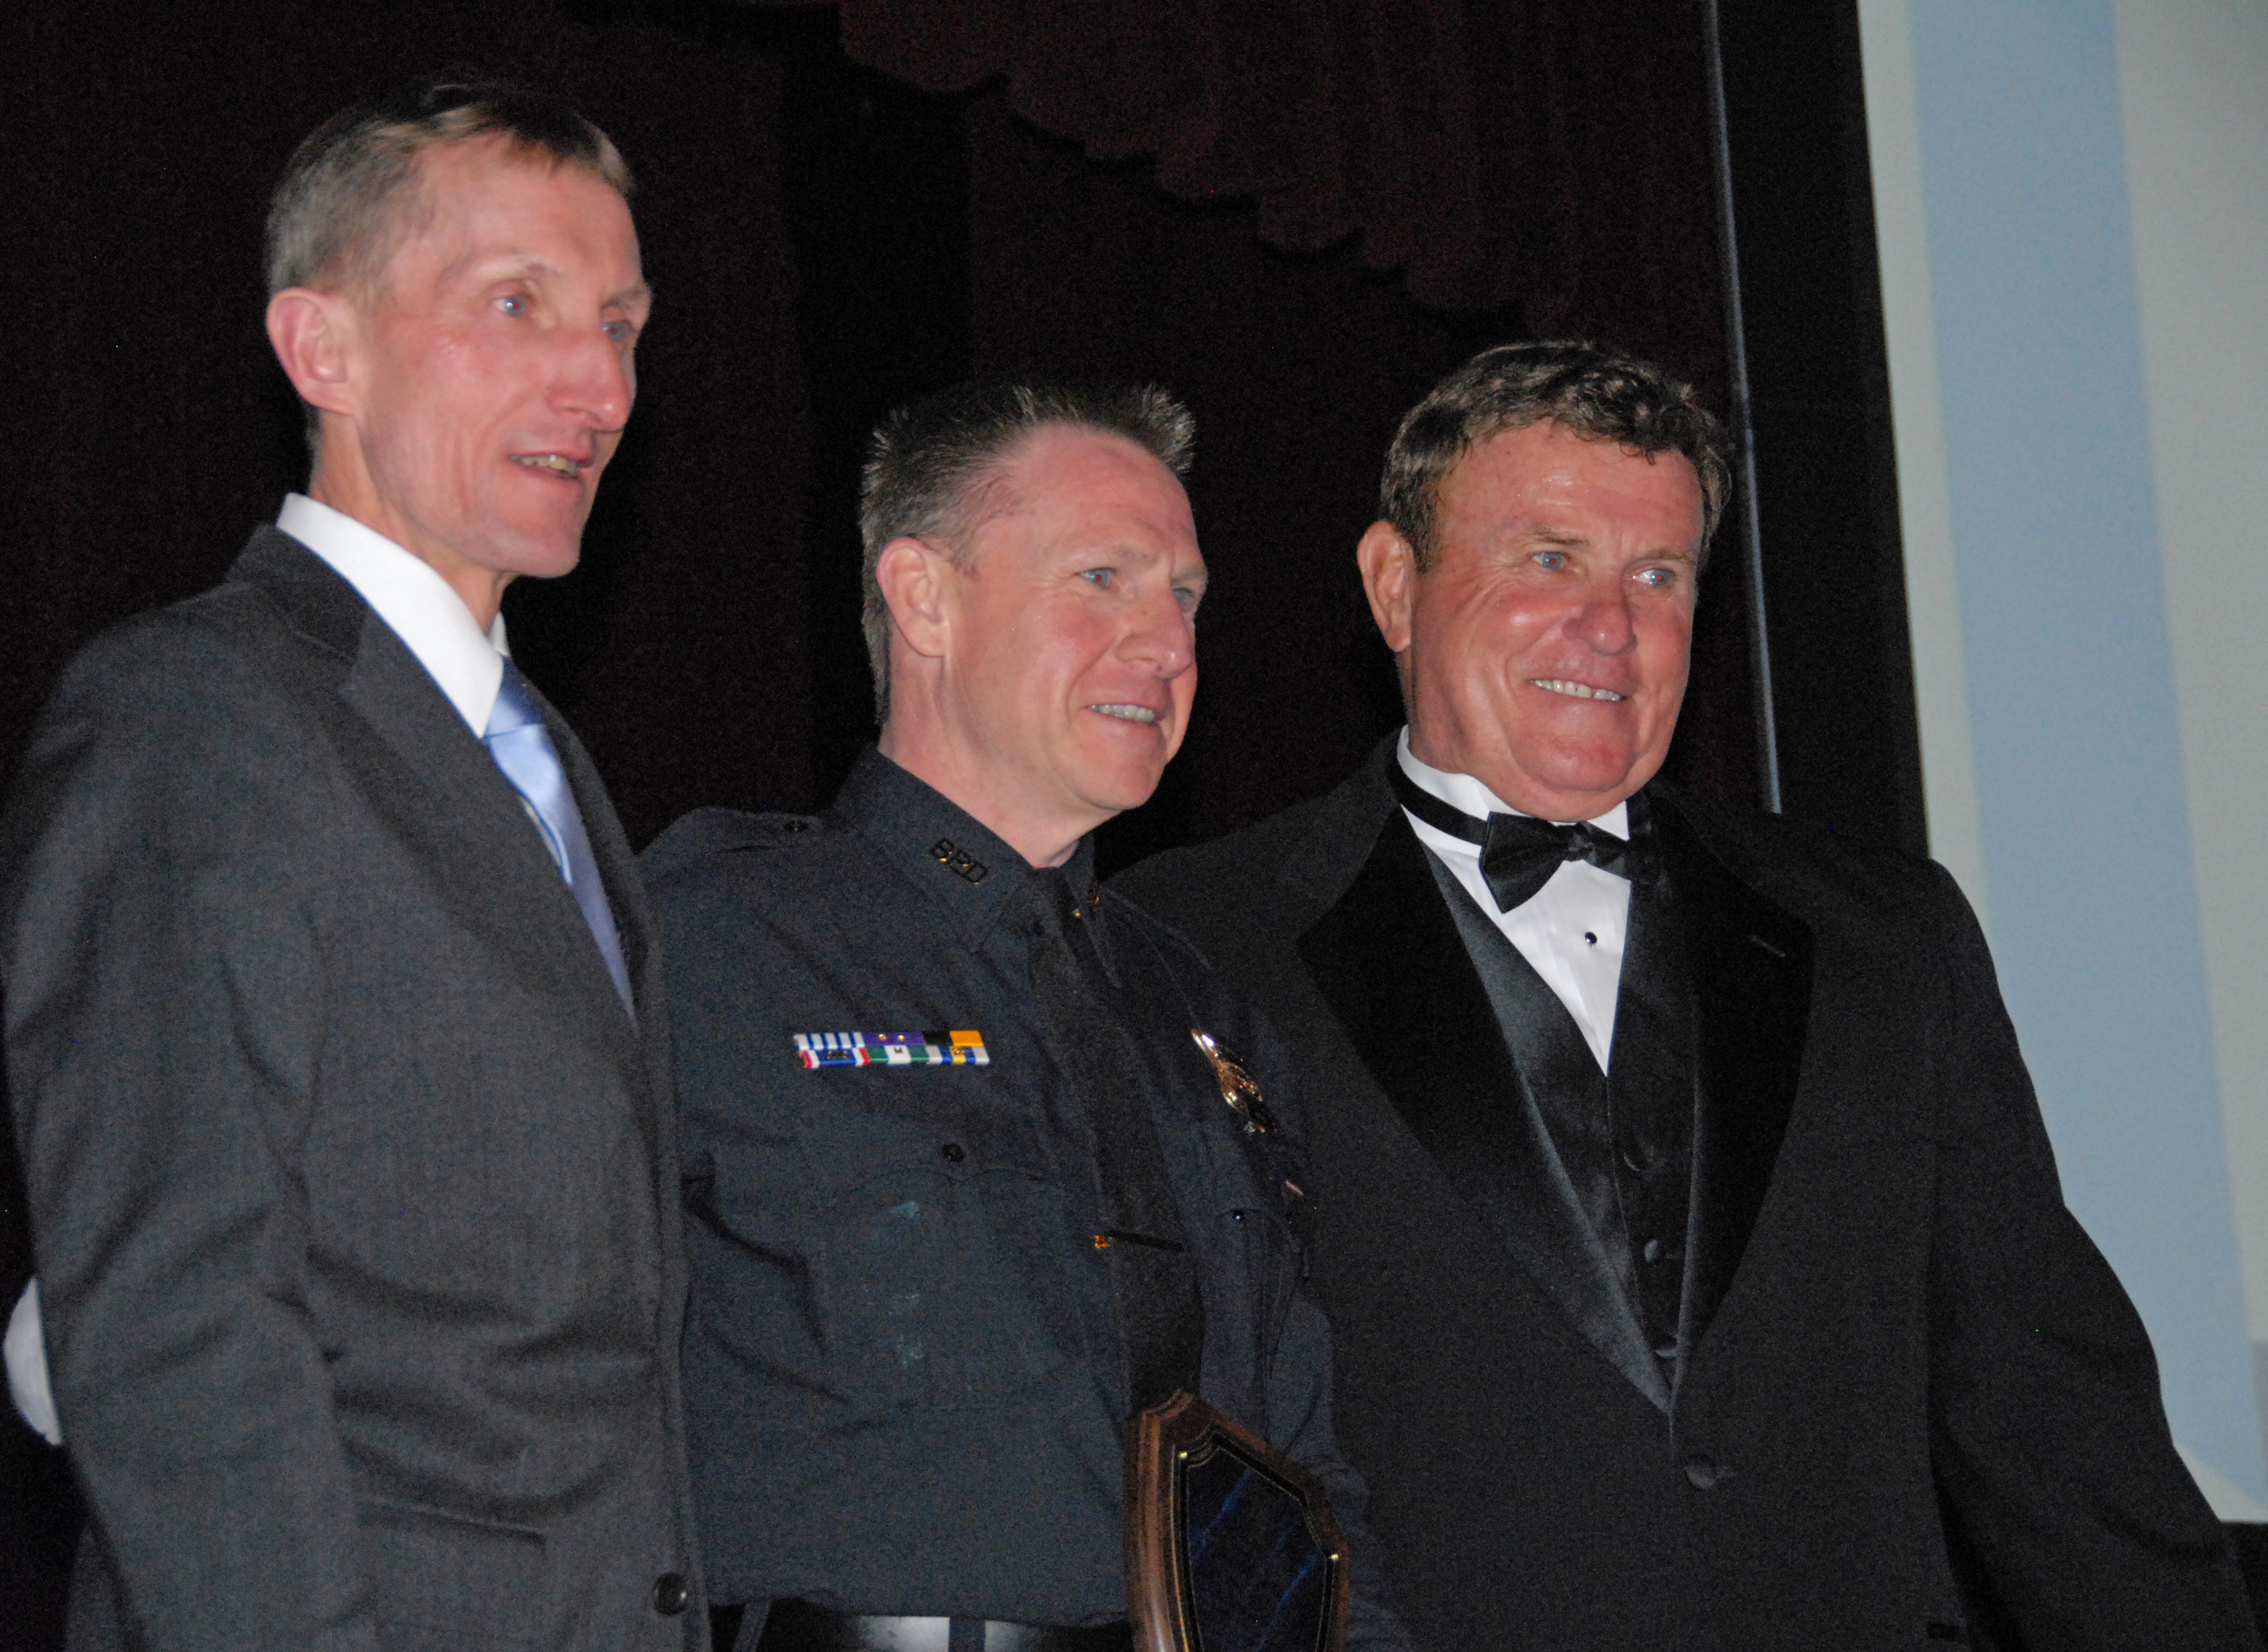 Commissioner William Evans, Sgt. Detective Dwan and President Bob Long (Photo courtesy of BPDNews)